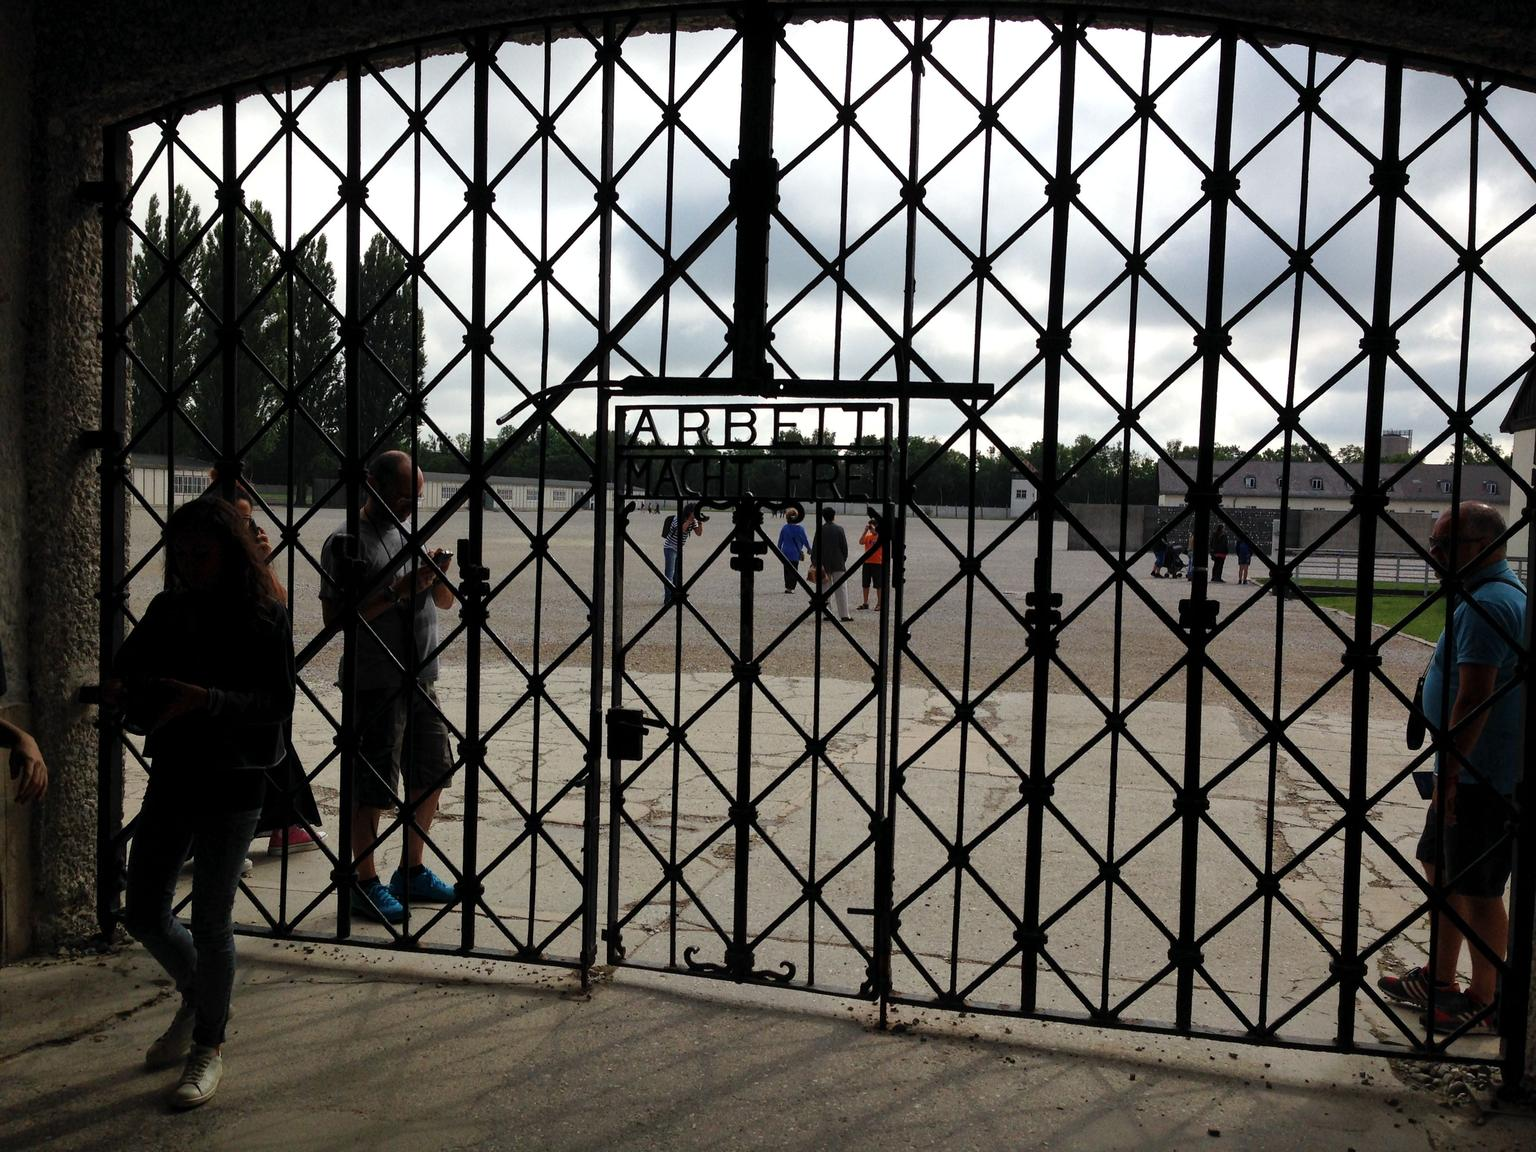 MAIS FOTOS, Excursão privada: Memorial do Campo de Concentração de Dachau saindo de Munique